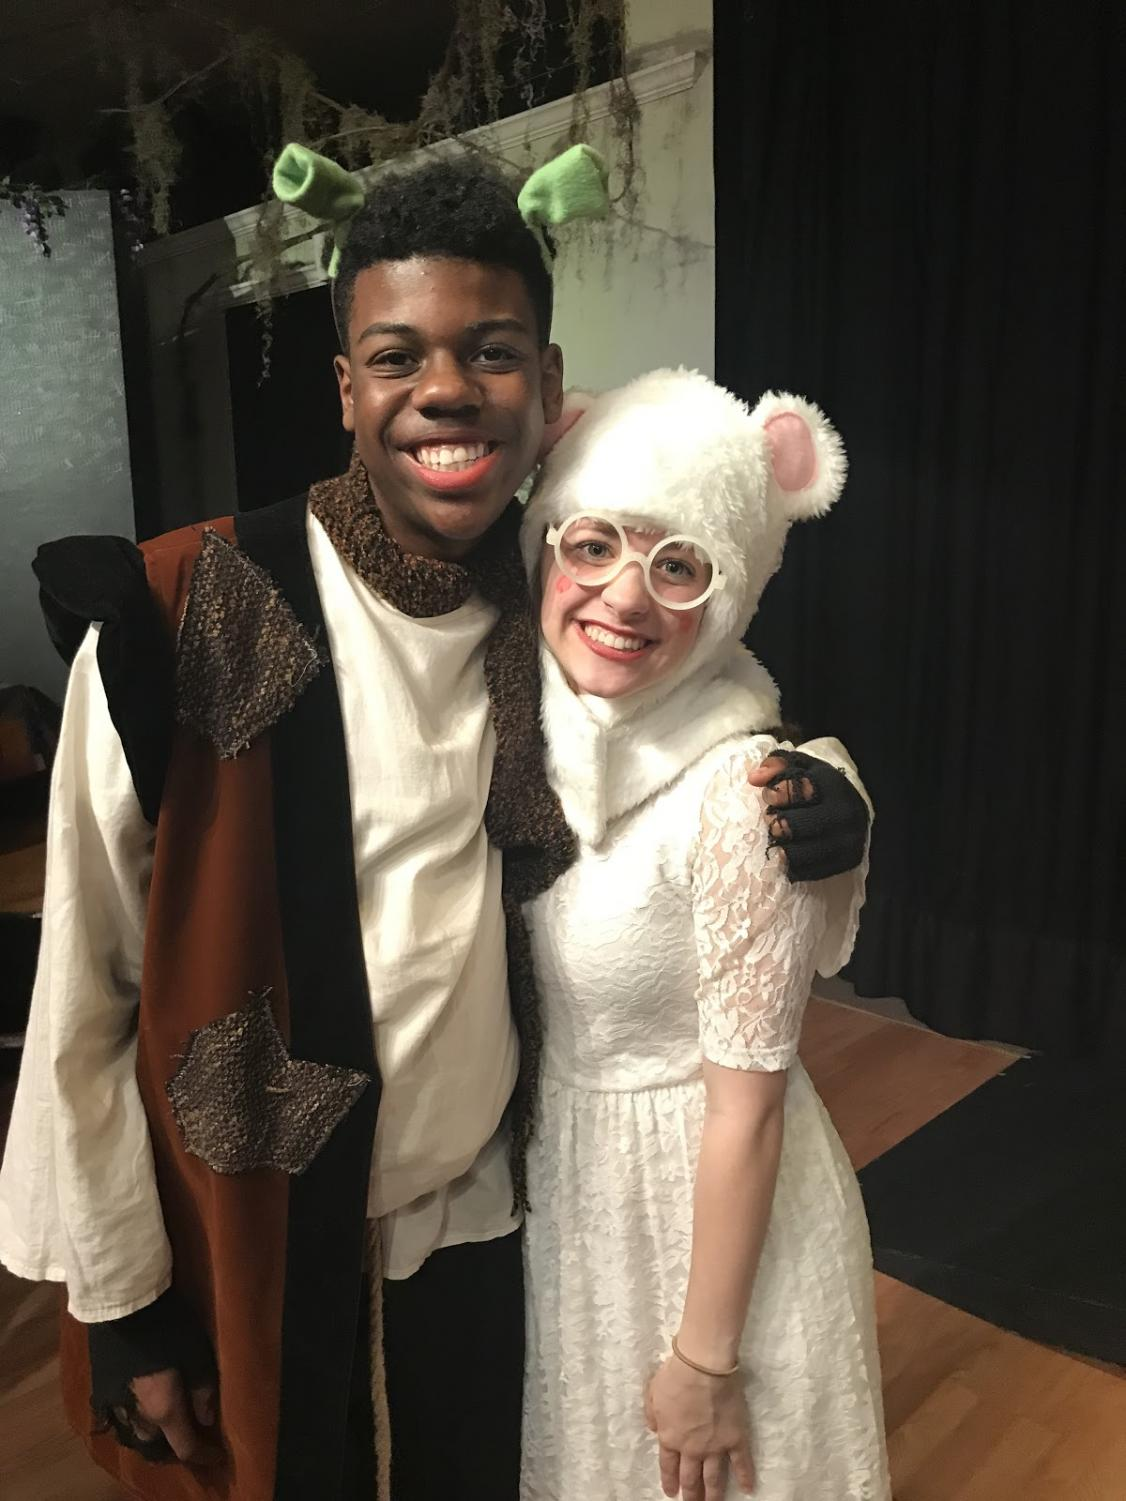 Standing next to his former cast member, Christian smiles after a successful performance of Shrek. Theatre and the arts is something that Christian is very passionate about in and out of school.